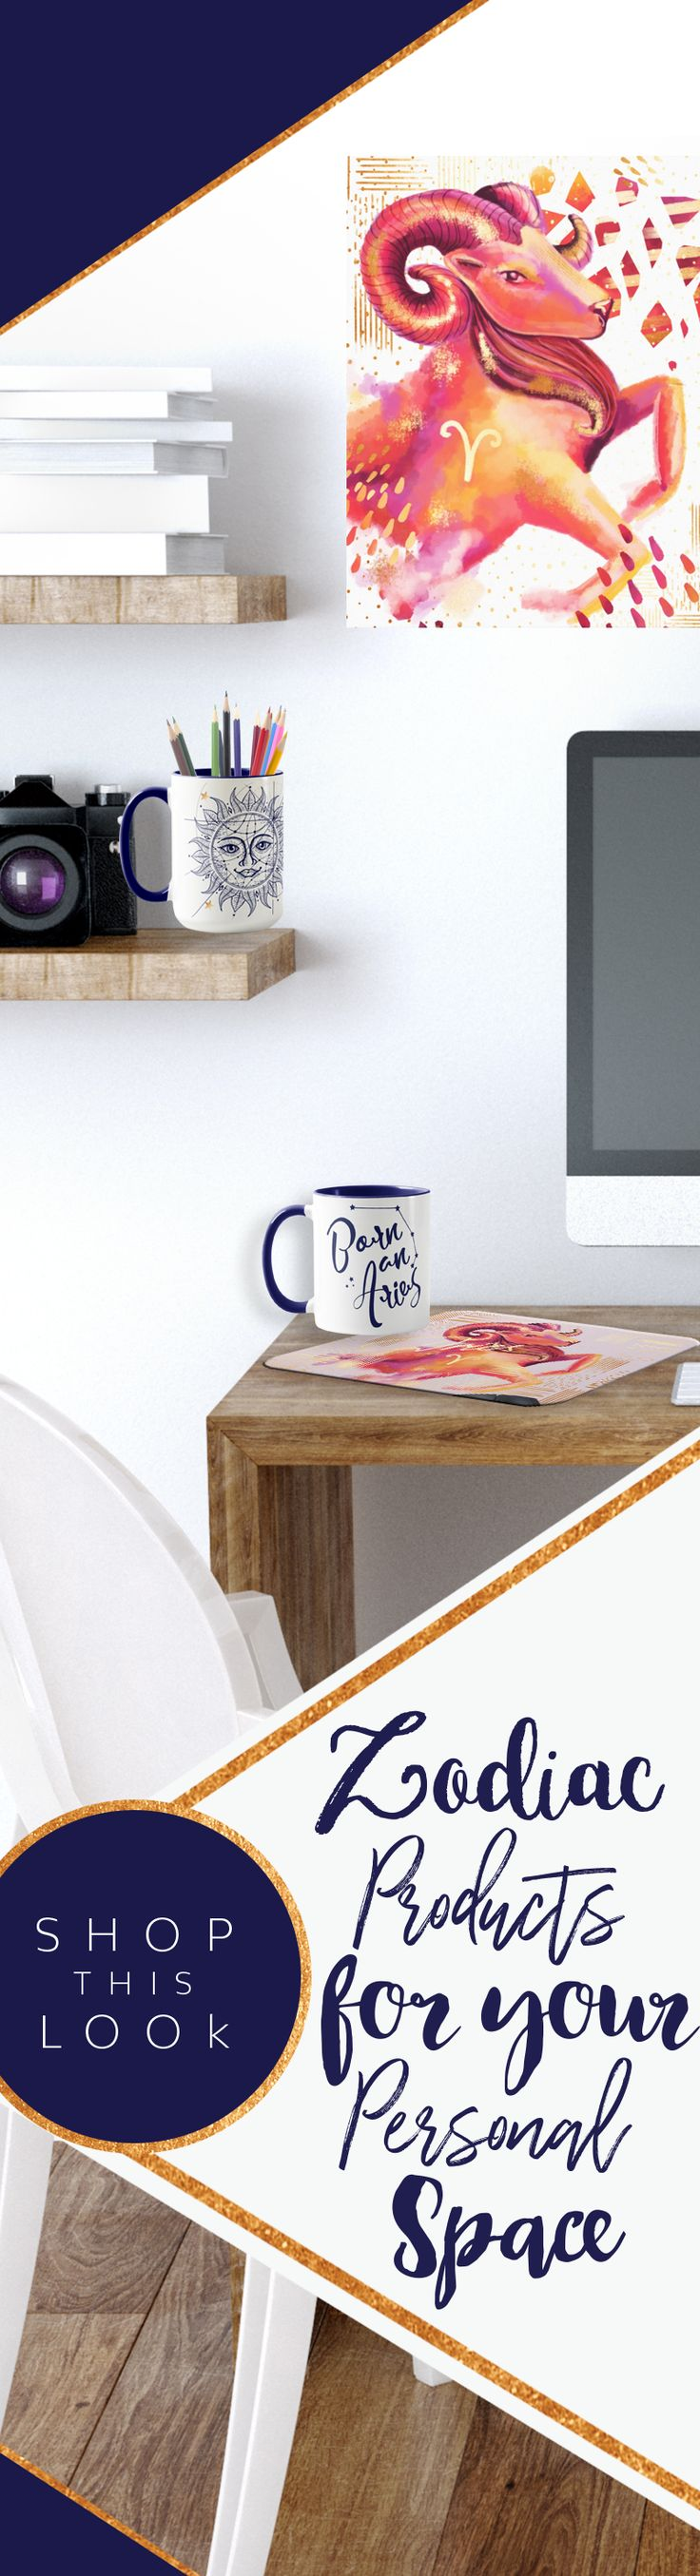 Personalize your #OfficeSpace with our personalized #Zodiac #Zazzle products! #Mugs #Mousepads #WallArt #Pencilcases and so much more!